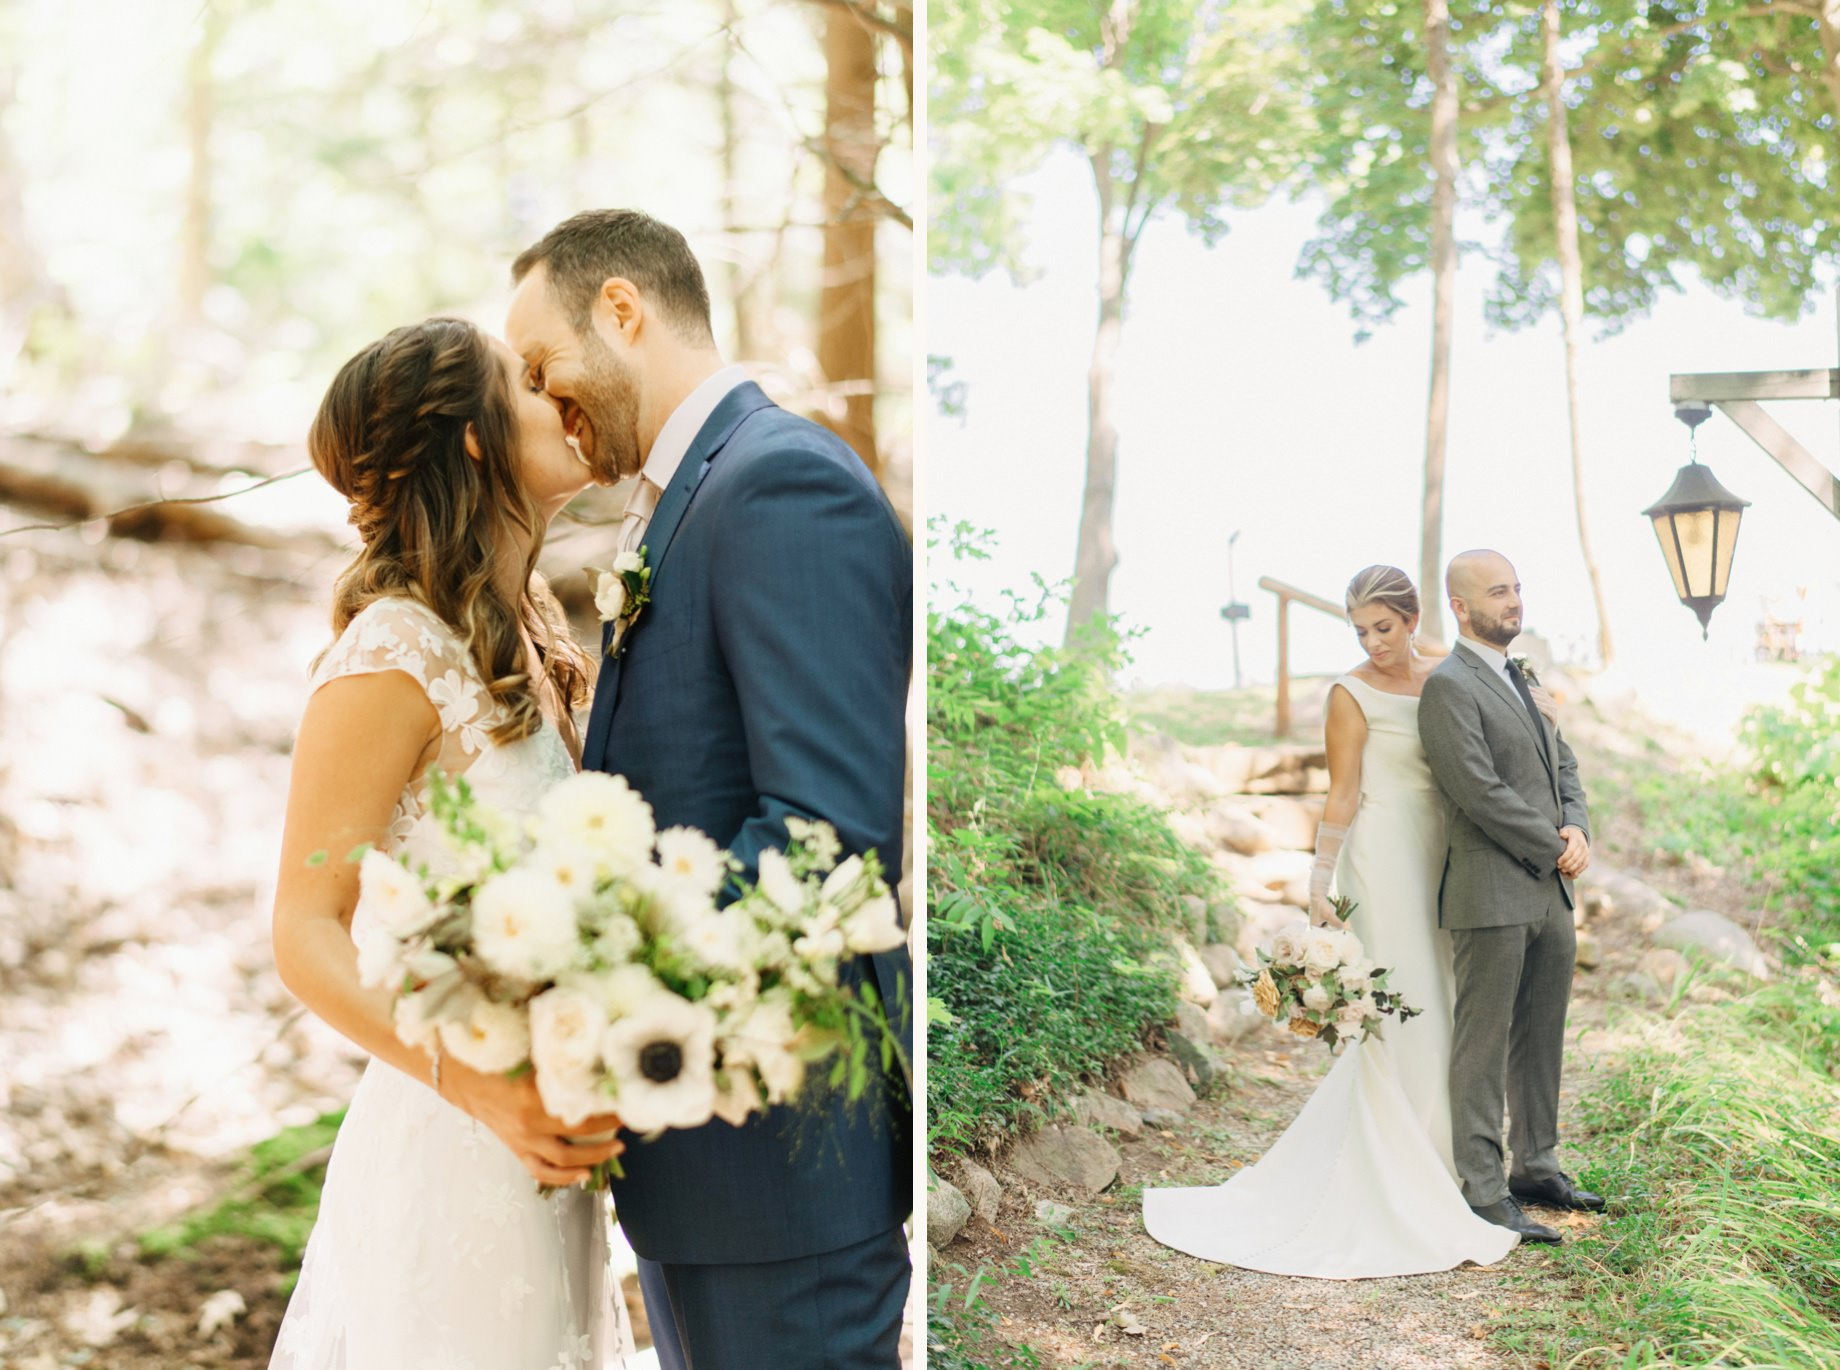 portraits of two couples in the woods by Michigan wedding photographer Heather Jowett